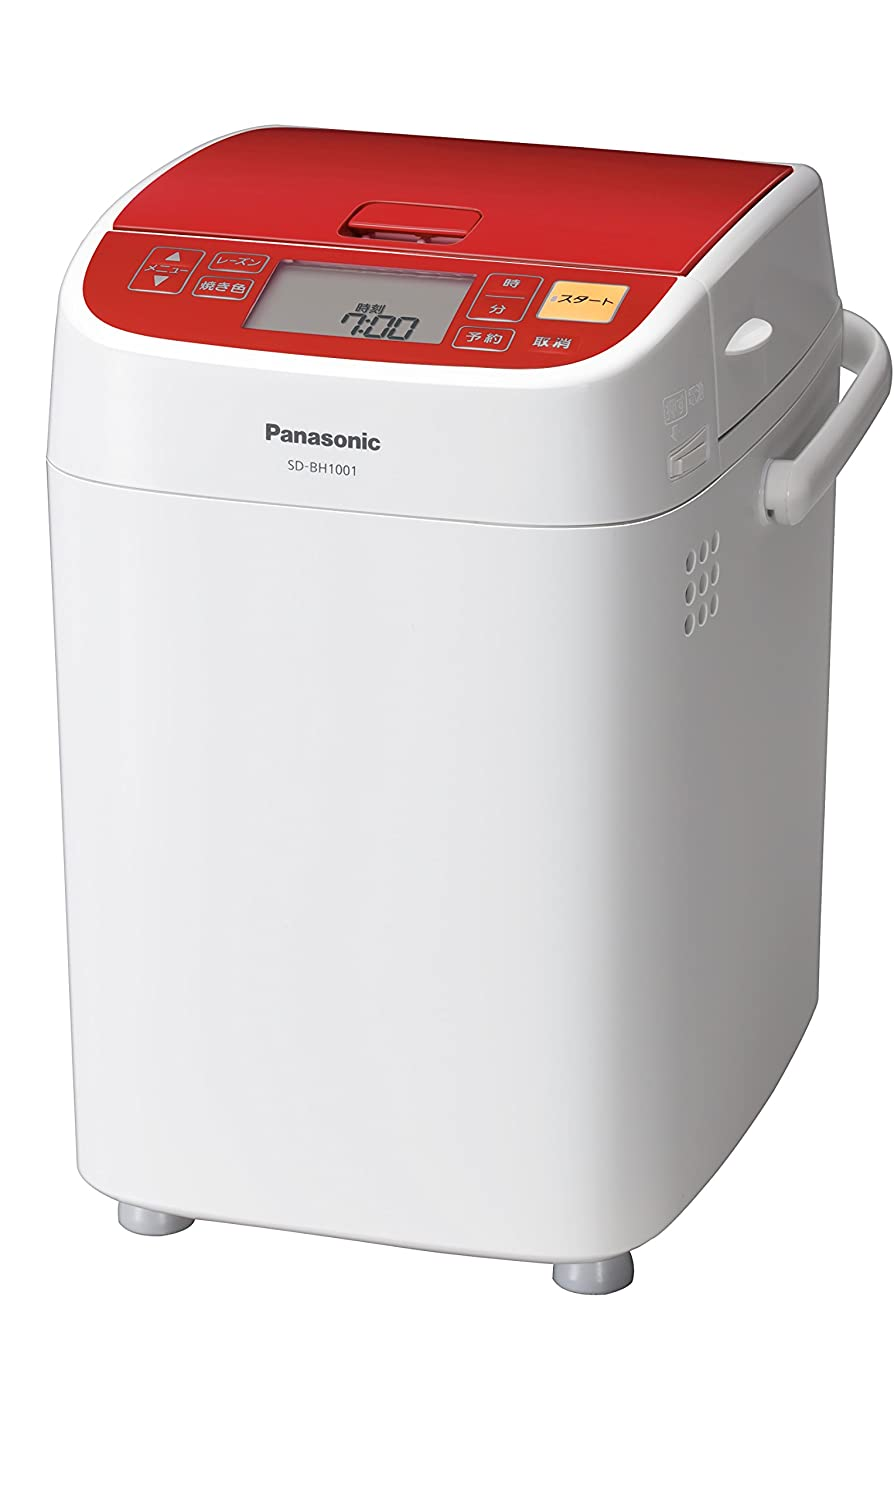 Panasonic Bread Maker Home Bakery Loaf Type Red Sd-bh1001-r (Japan Import-No Warranty) AC100